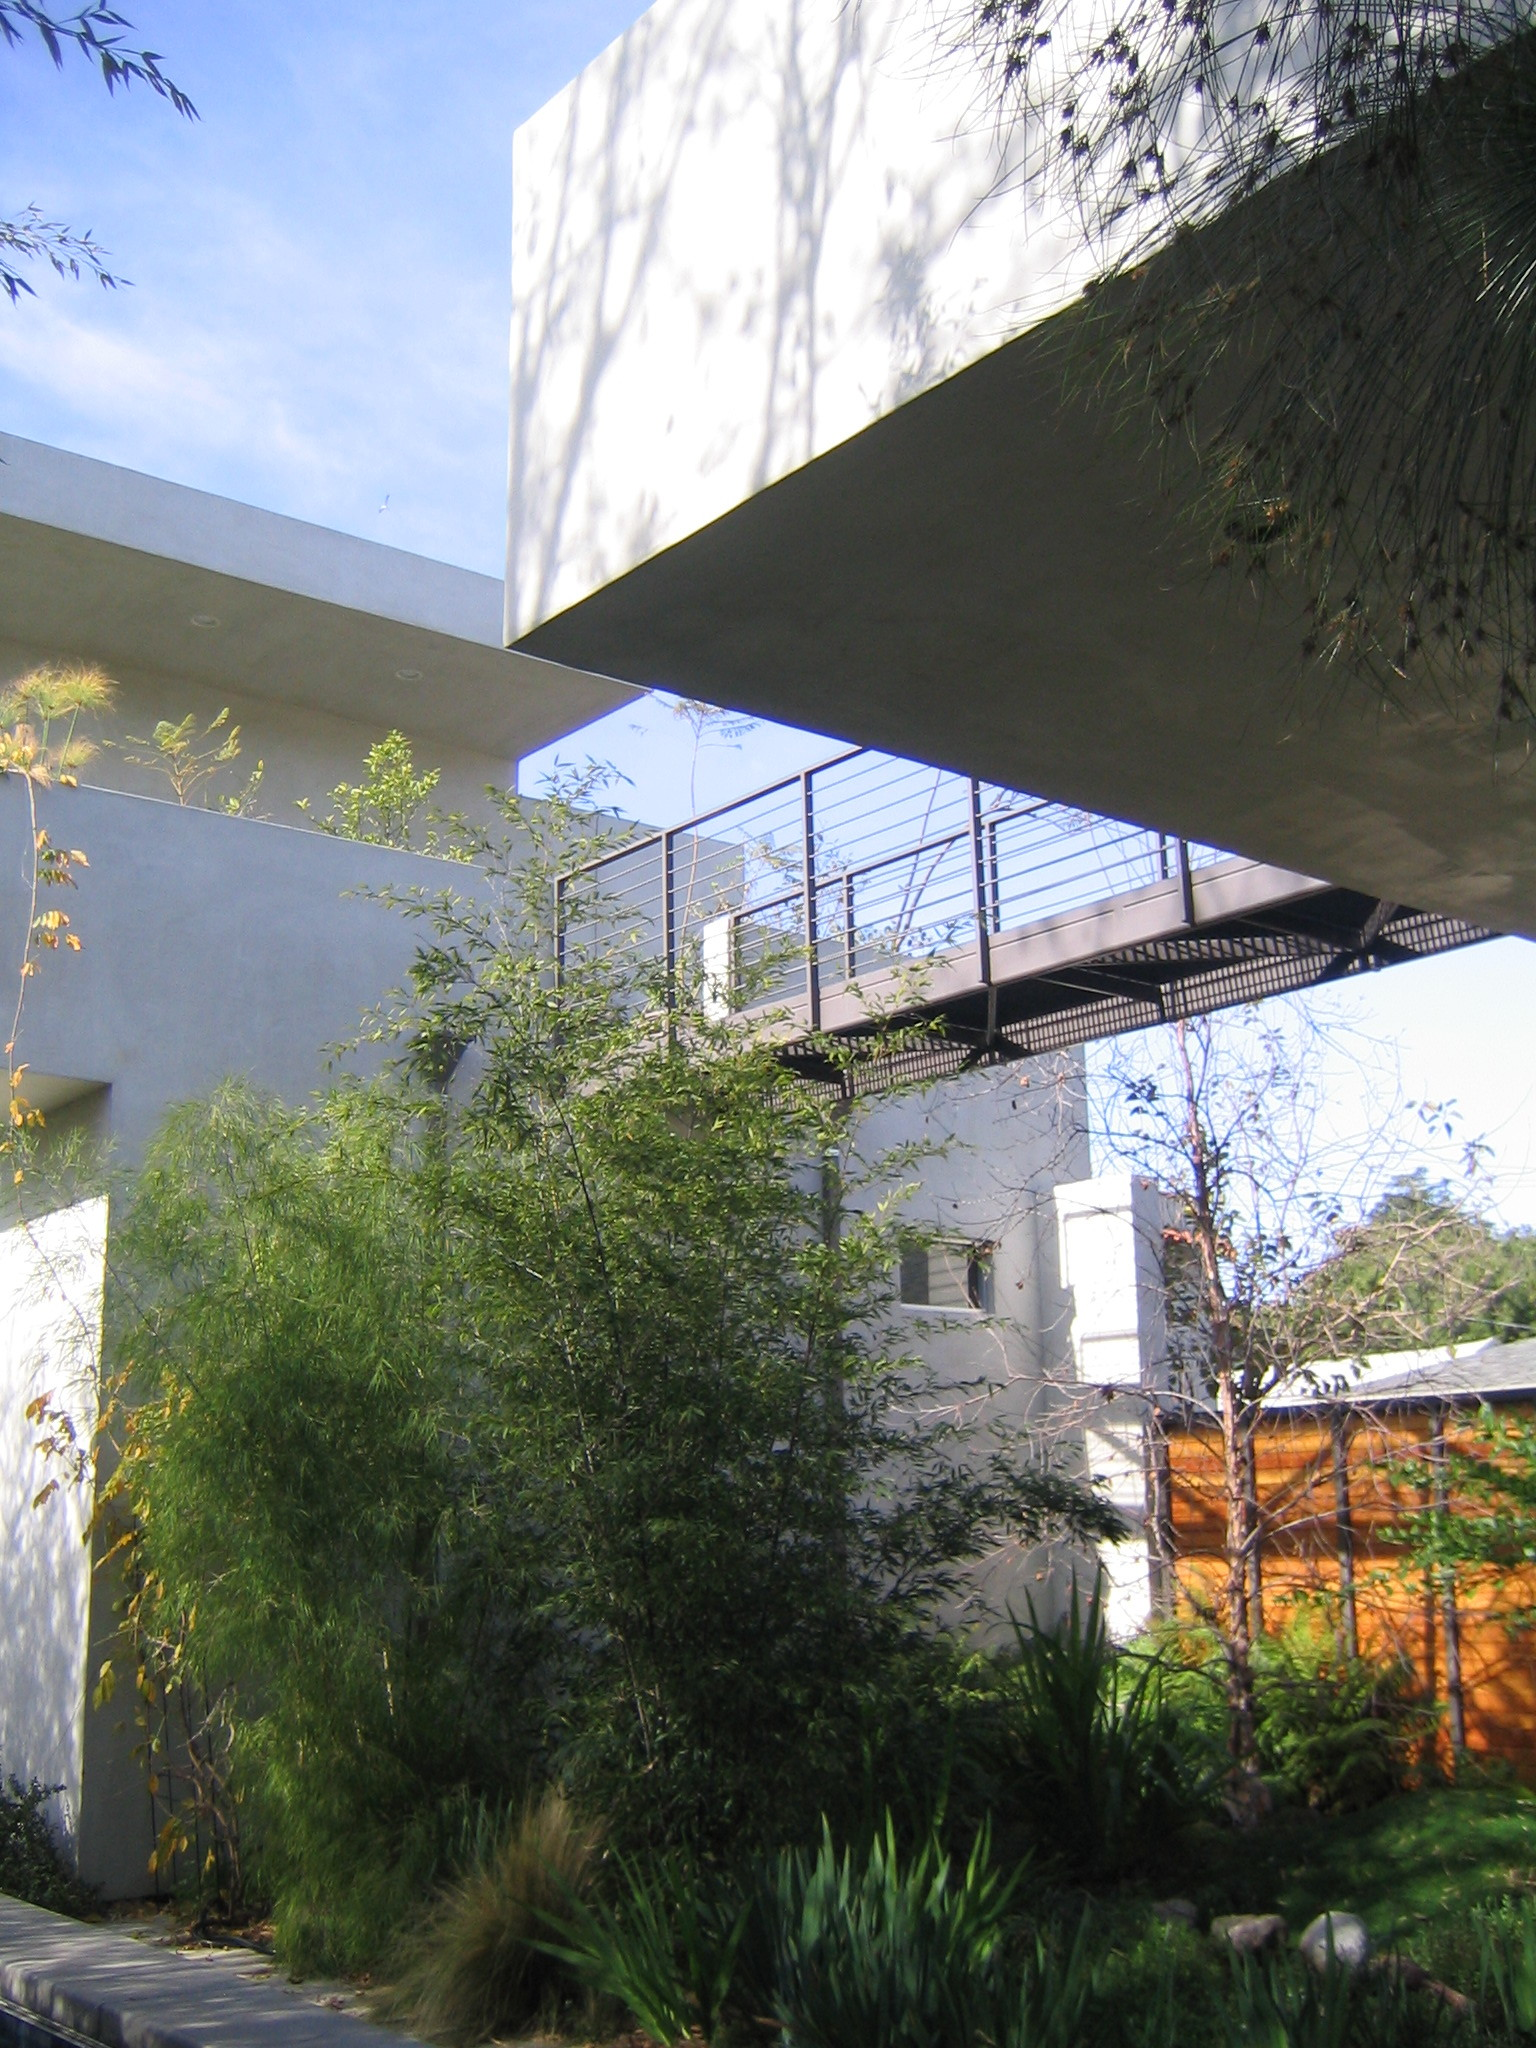 S.E.A.-Studio-Environmental-Architecture-David-Hertz-FAIA-West-Los-Angeles-Mar-Vista-sustainable-regenerative-restorative-design-modern-residential-adaptive-reuse-remodel-mindful-pool-concrete-skylights-passive-systems-natural-ventilation-garden-11.JPG